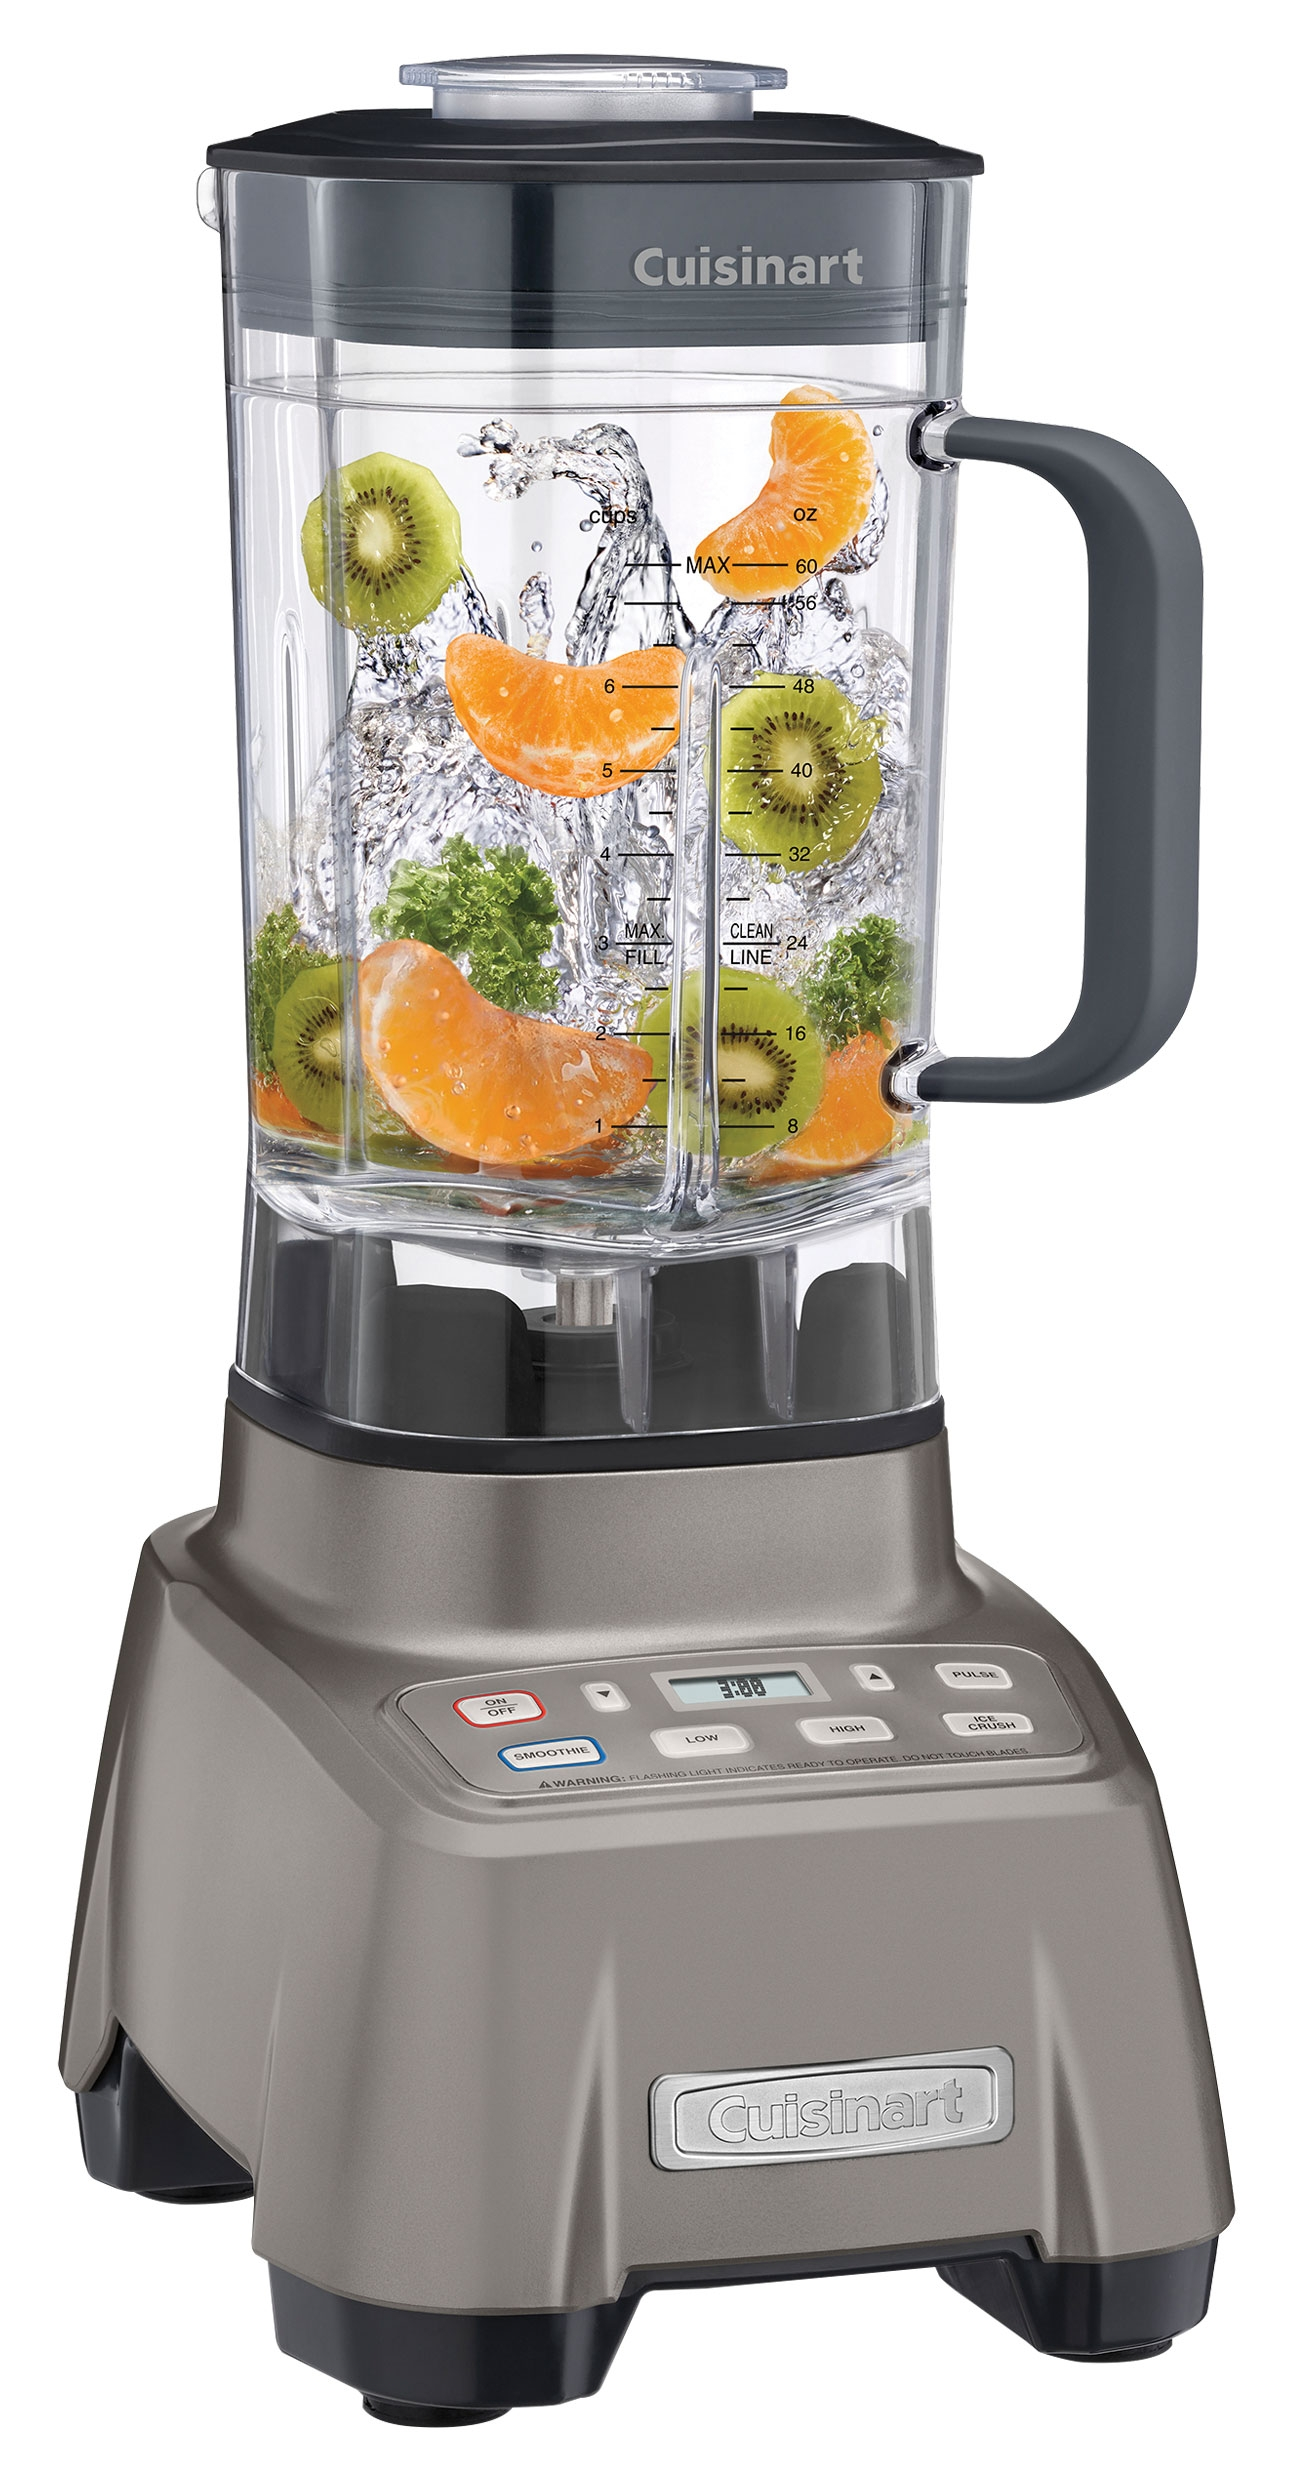 Cuisinart Hurricane Blender - (Fav)